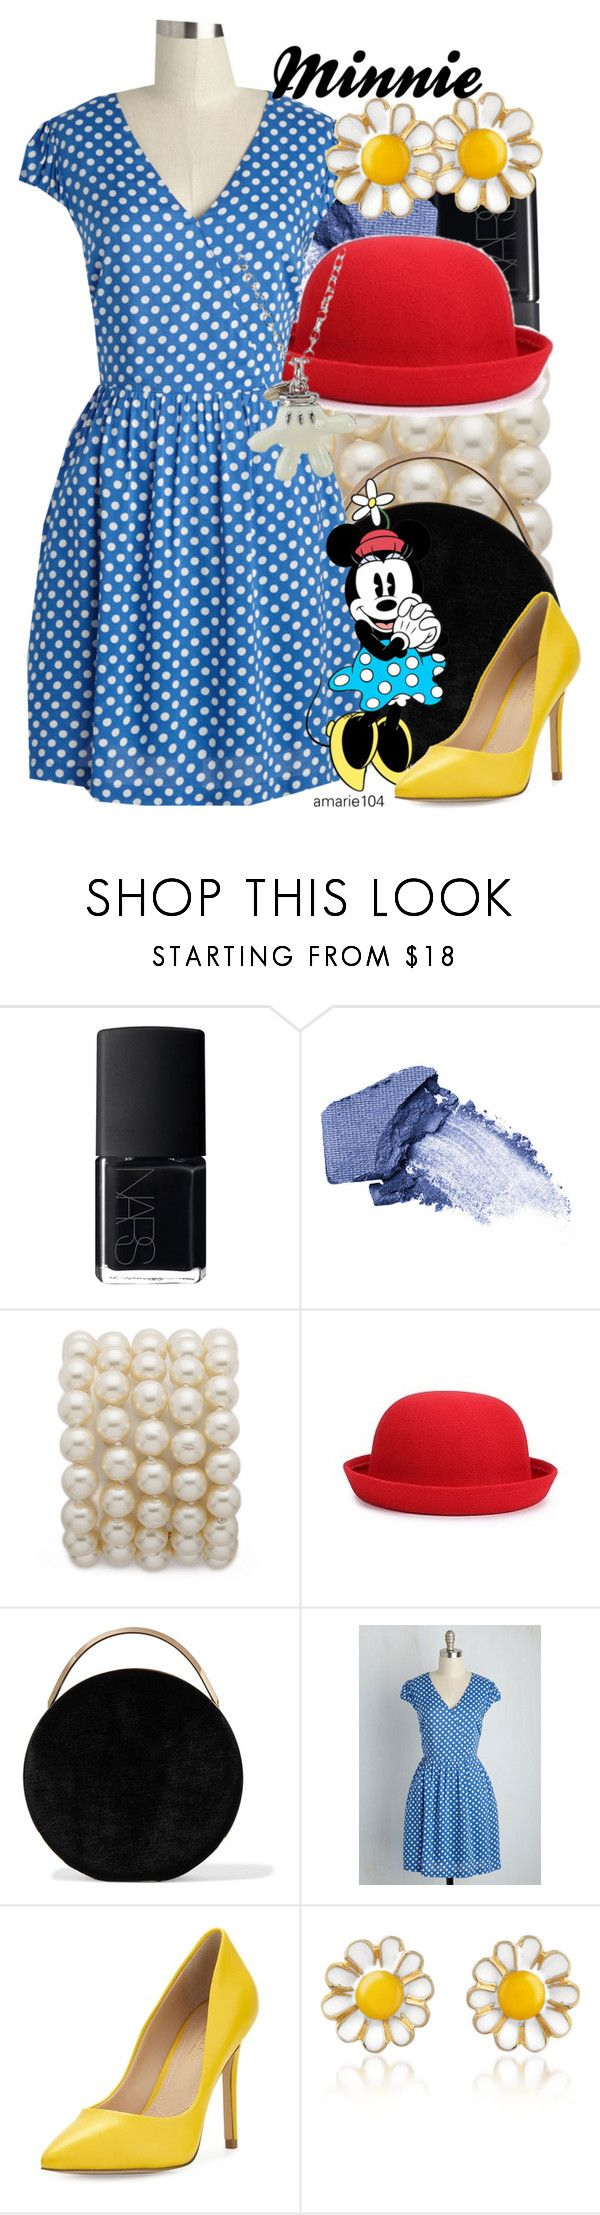 """""""Minnie"""" by amarie104 ❤ liked on Polyvore featuring NARS Cosmetics, Too Faced Cosmetics, Eddie Borgo, Charles by Charles David, AZ Collection and Disney"""